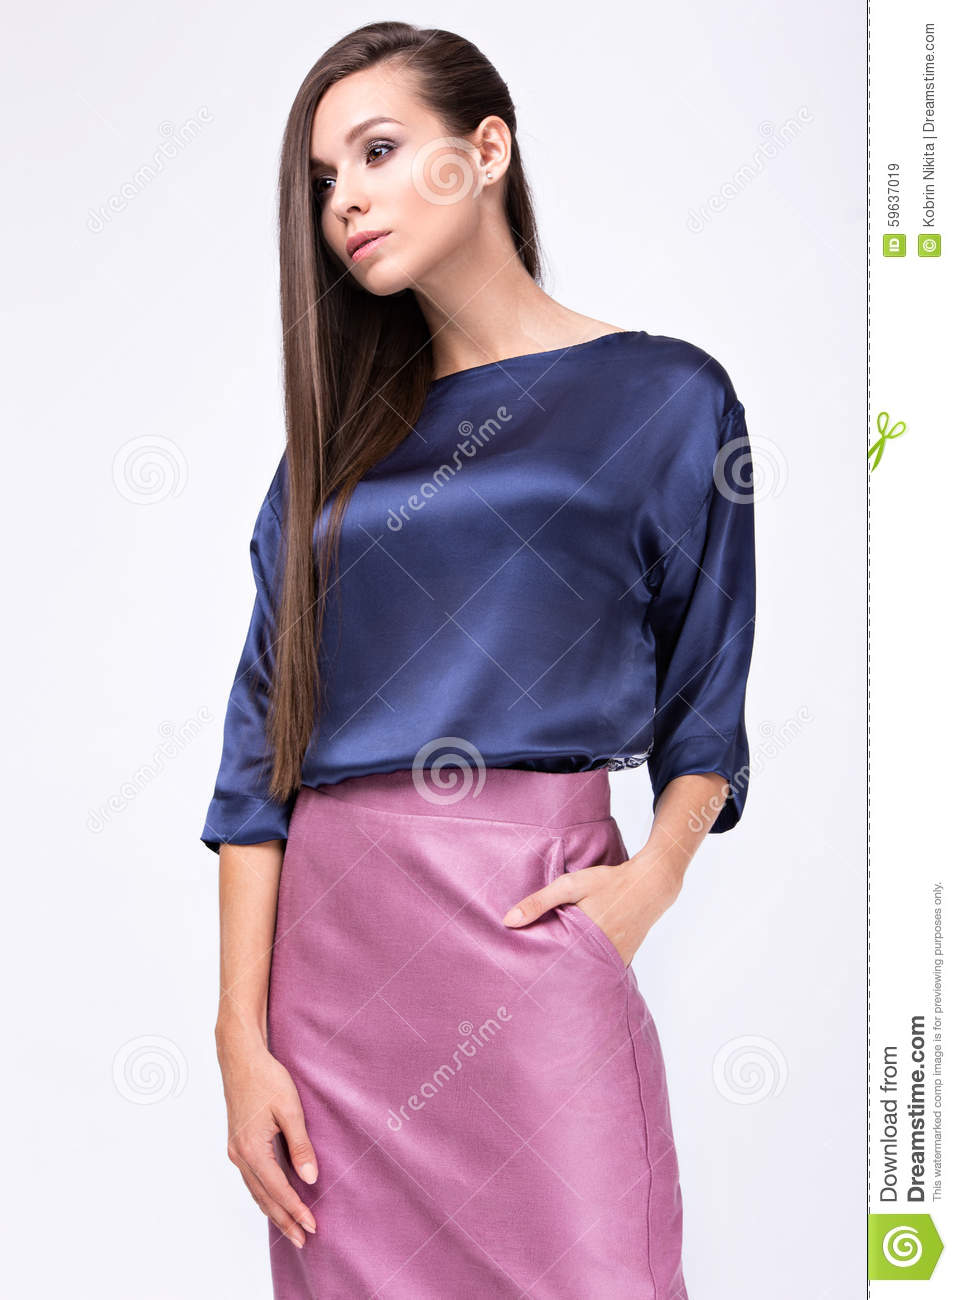 Stylish Clothes Pretty Girl In Fashionable Stylish Clothes Stock Image Image Of